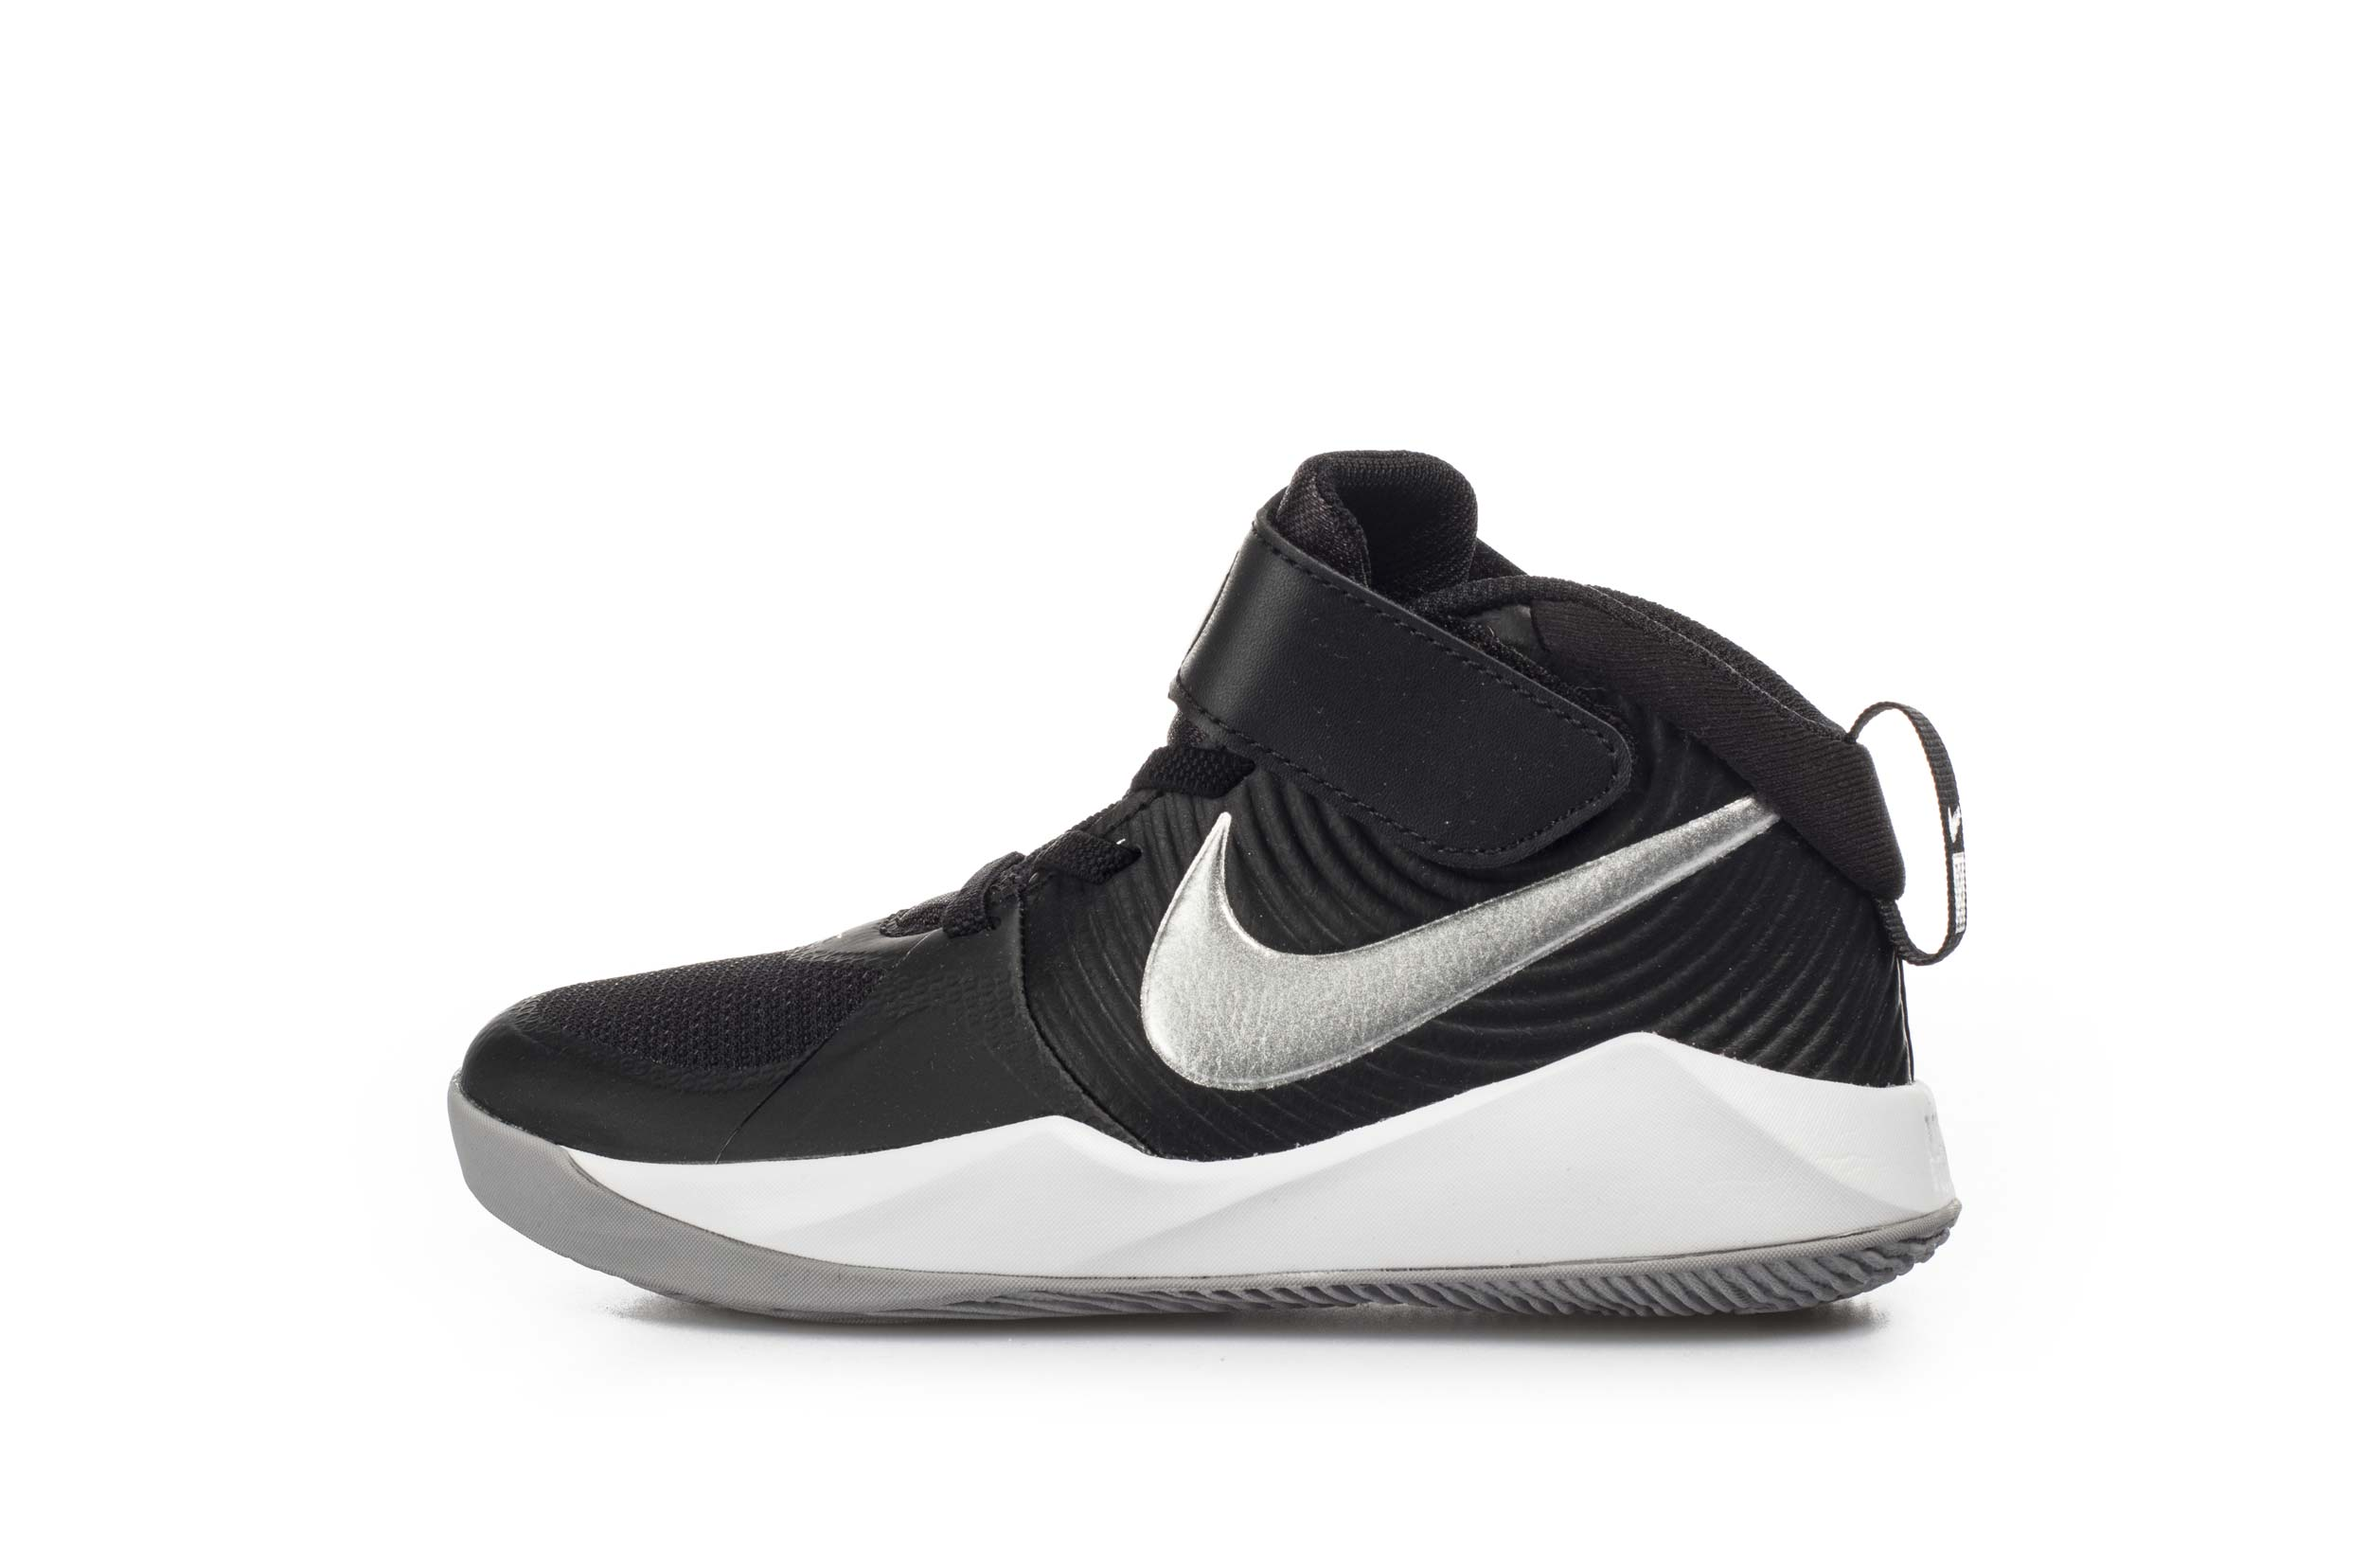 NIKE TEAM HUSTLE D 9 PS AQ4225-001 Μαύρο